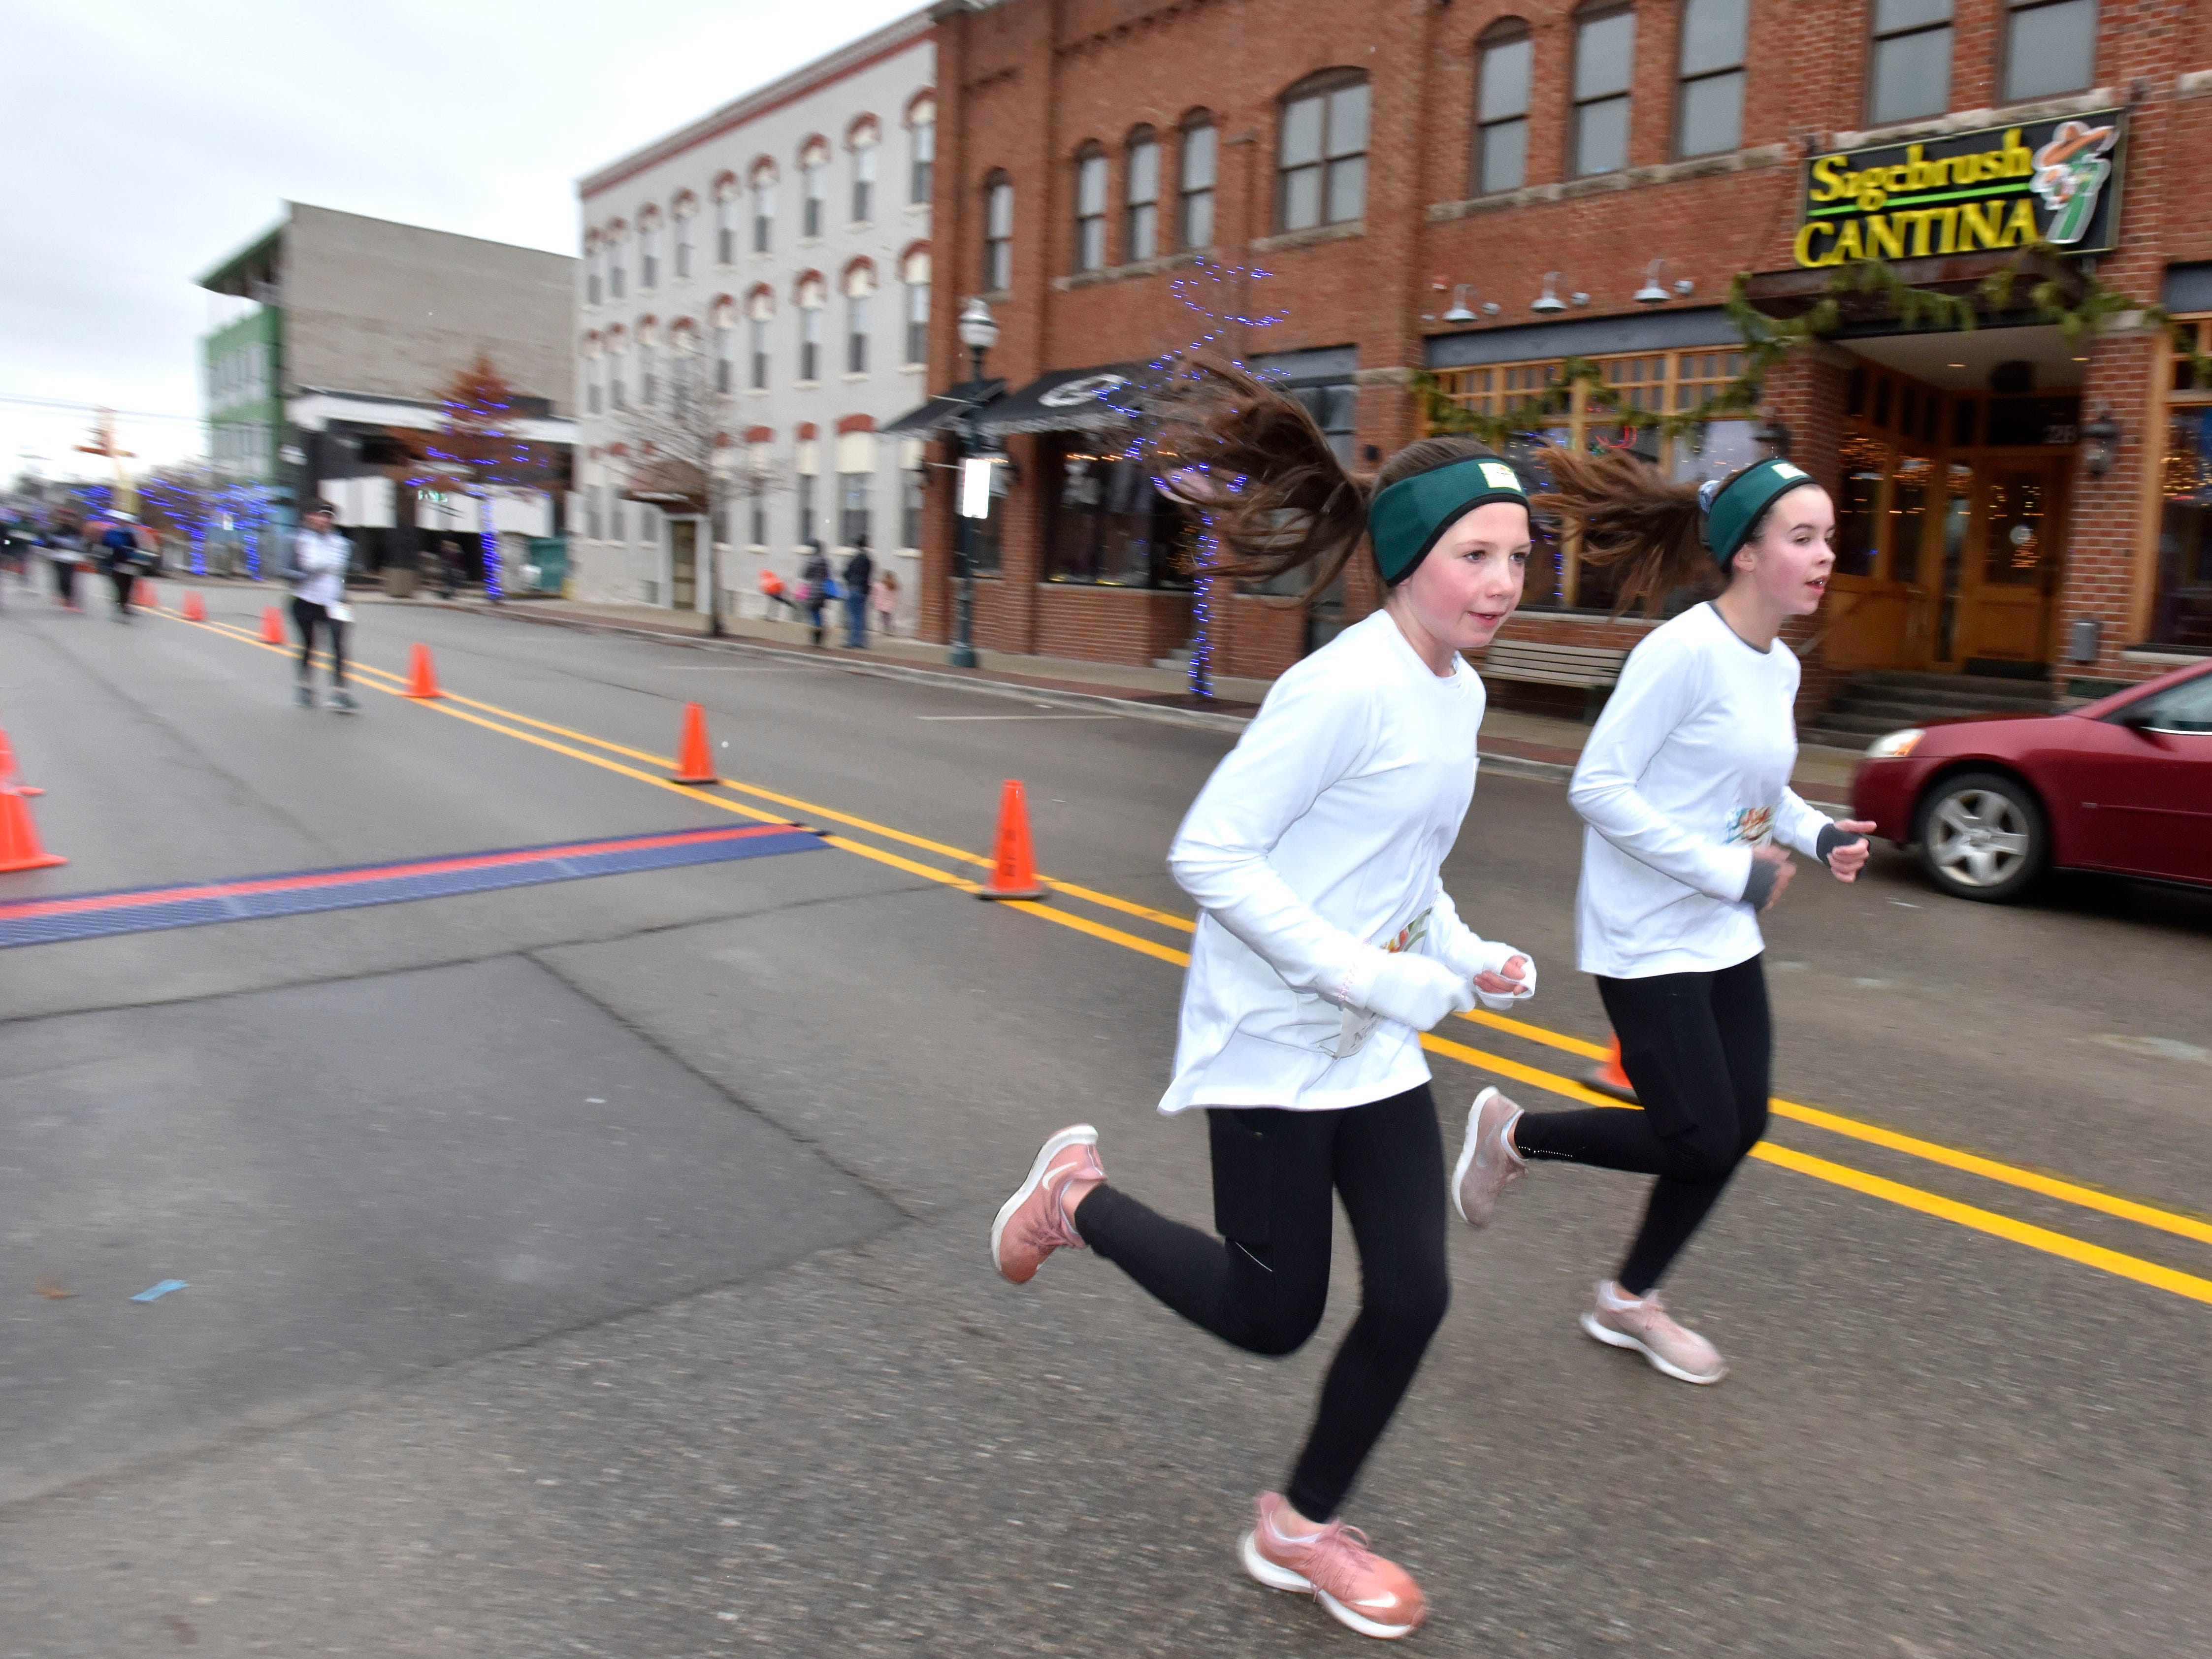 Cameron Cole (107), left, finishes 3rd in females ages 13 and under and 89th overall as Emmalee Clow (106), right, finishes 4th in females ages 13 and under and 91st overall.